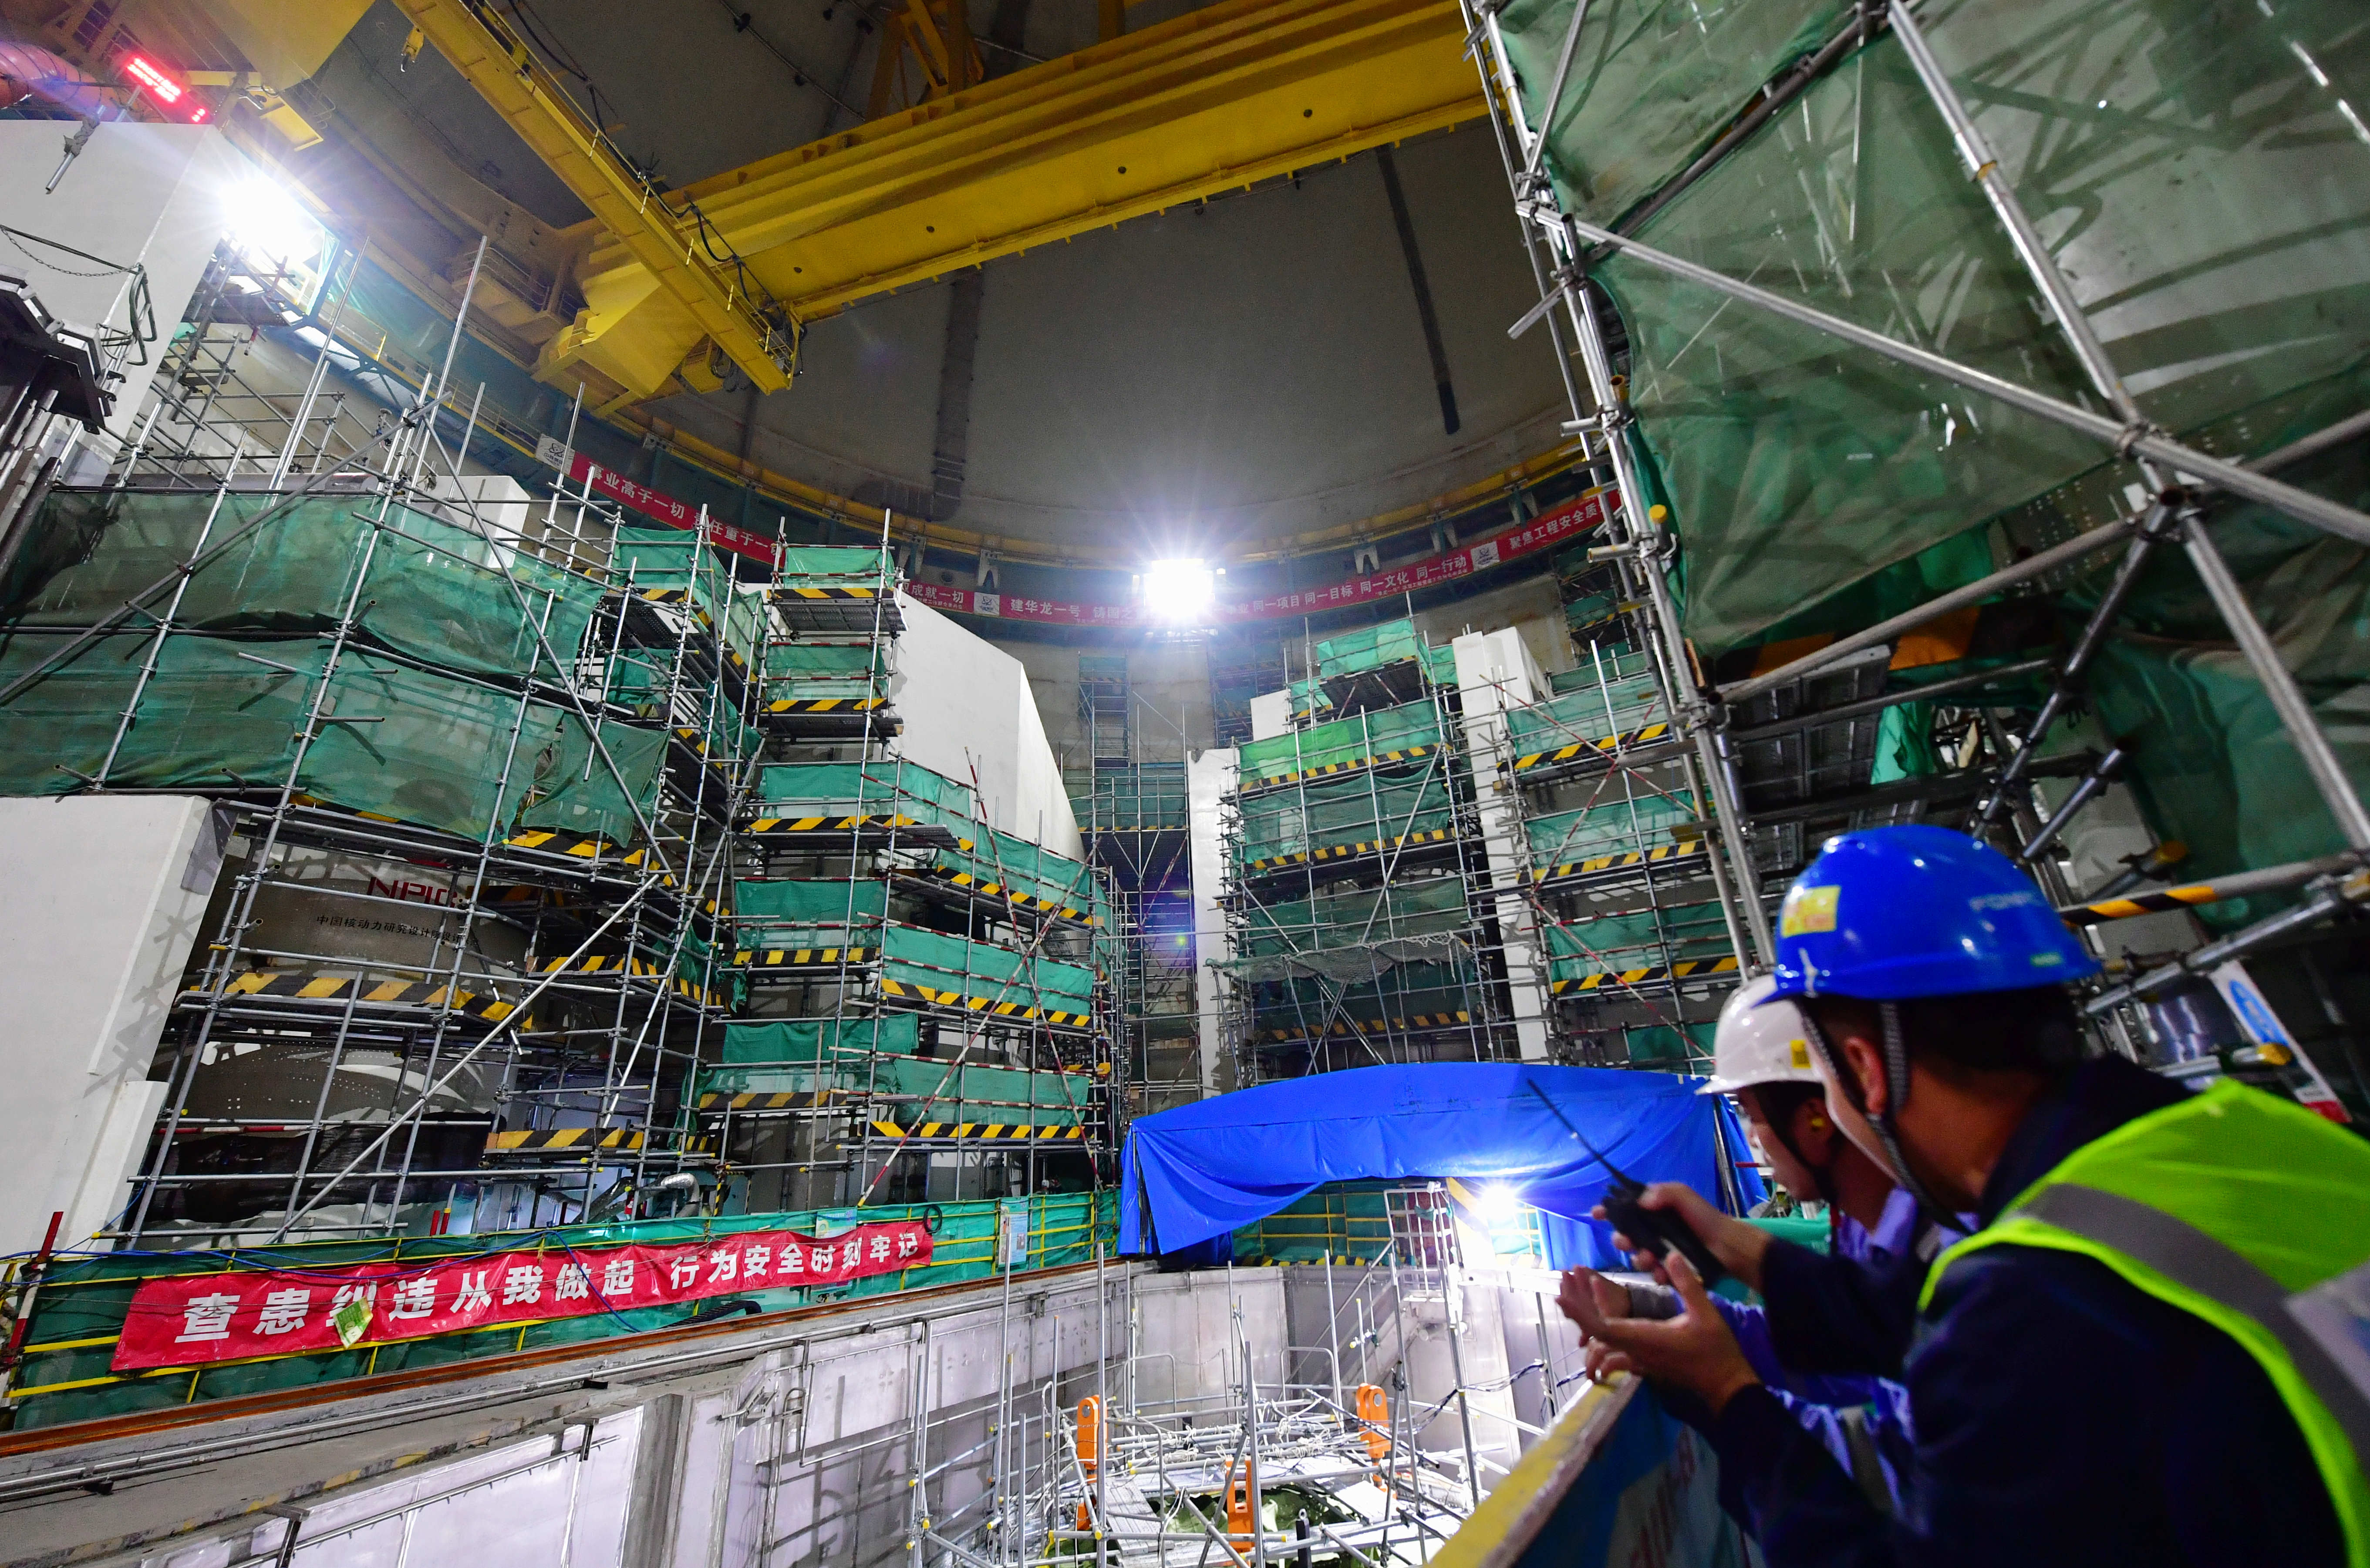 China to develop nuclear energy with guaranteed safety: officials - Xinhua | English.news.cn